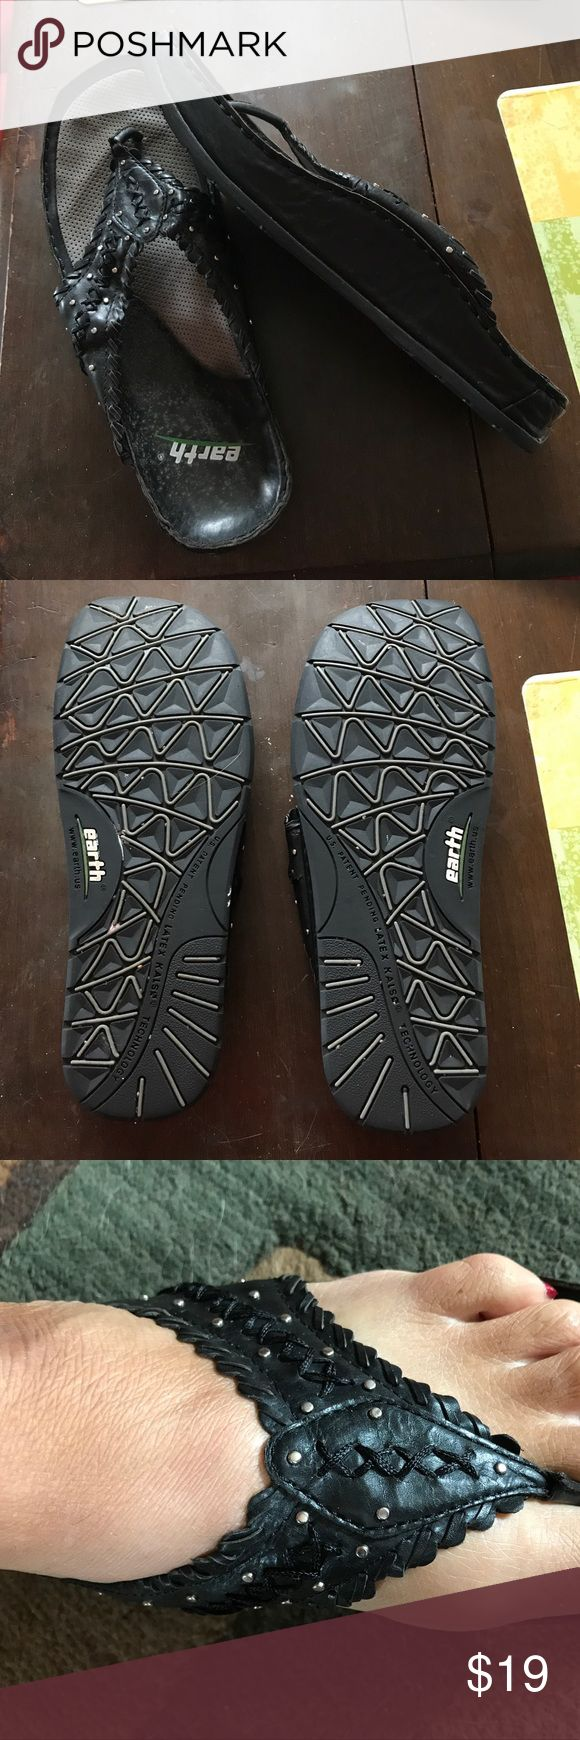 Earth shoes size 10 Like new earth shoes with negative heal earth Shoes Sandals